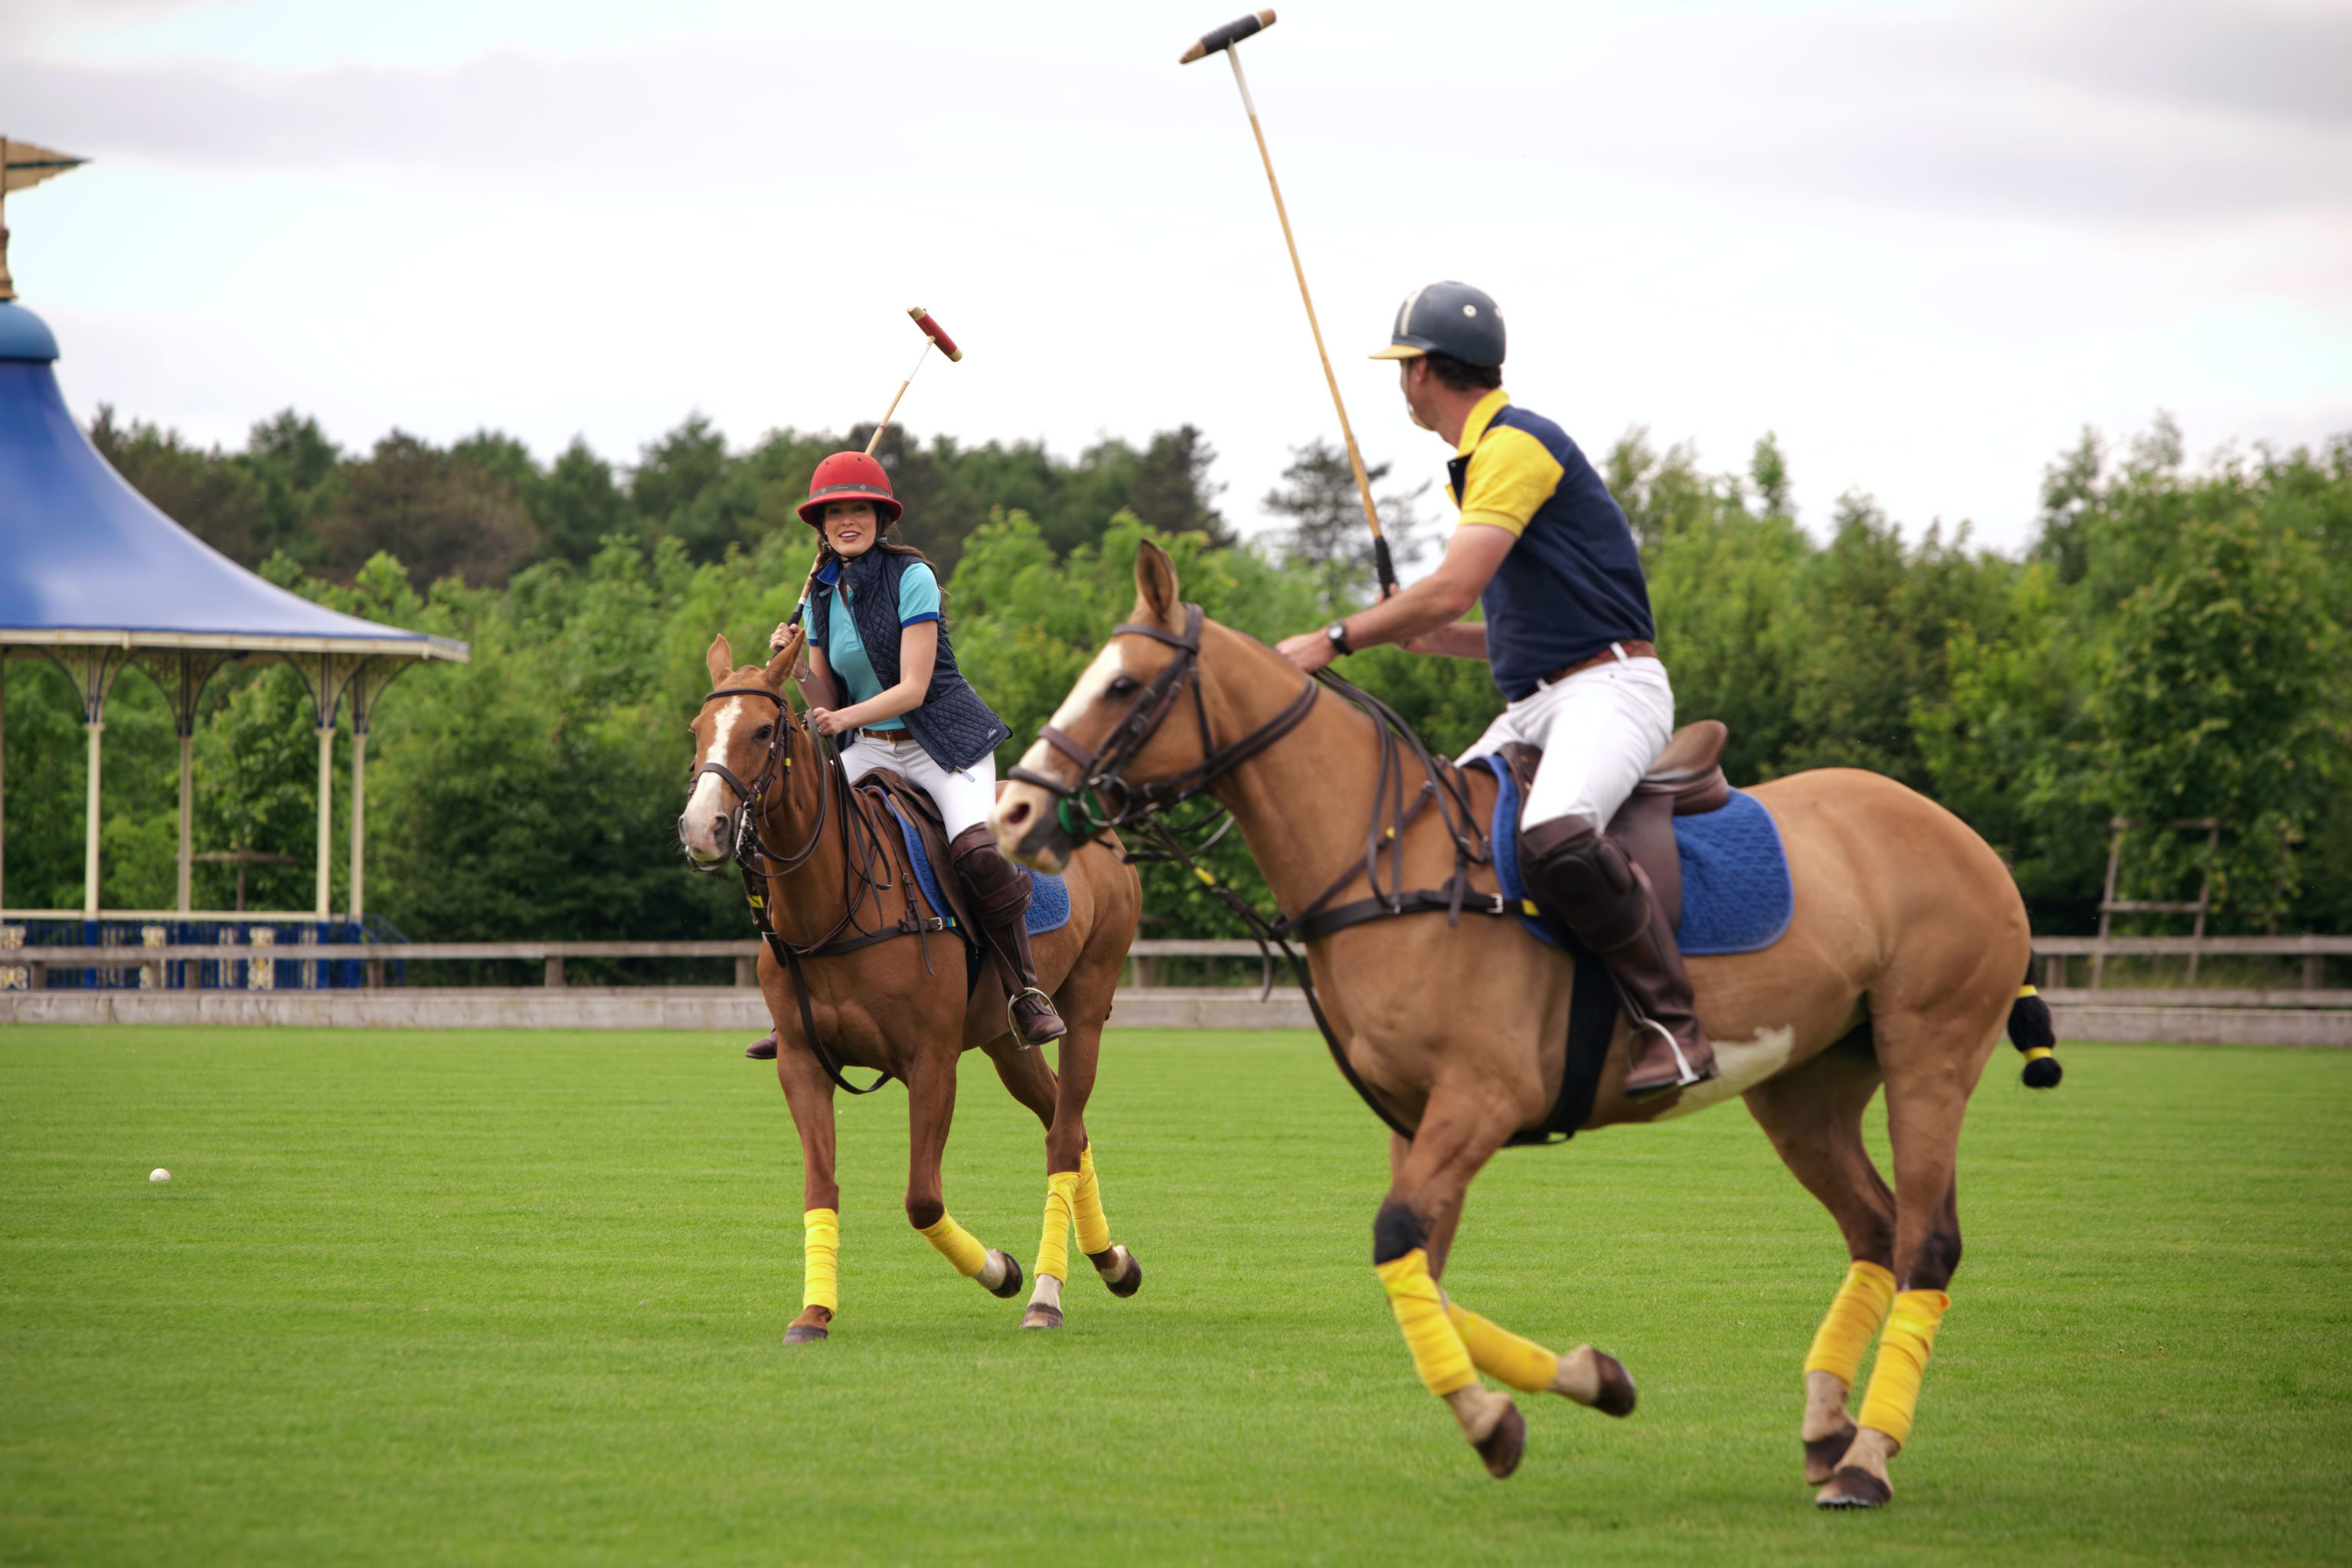 Country Entertainment Grounds Hotels Luxury Resort Sport sky grass ball game polo sports stick and ball games field team sport stick and ball sports equestrian sport animal sports